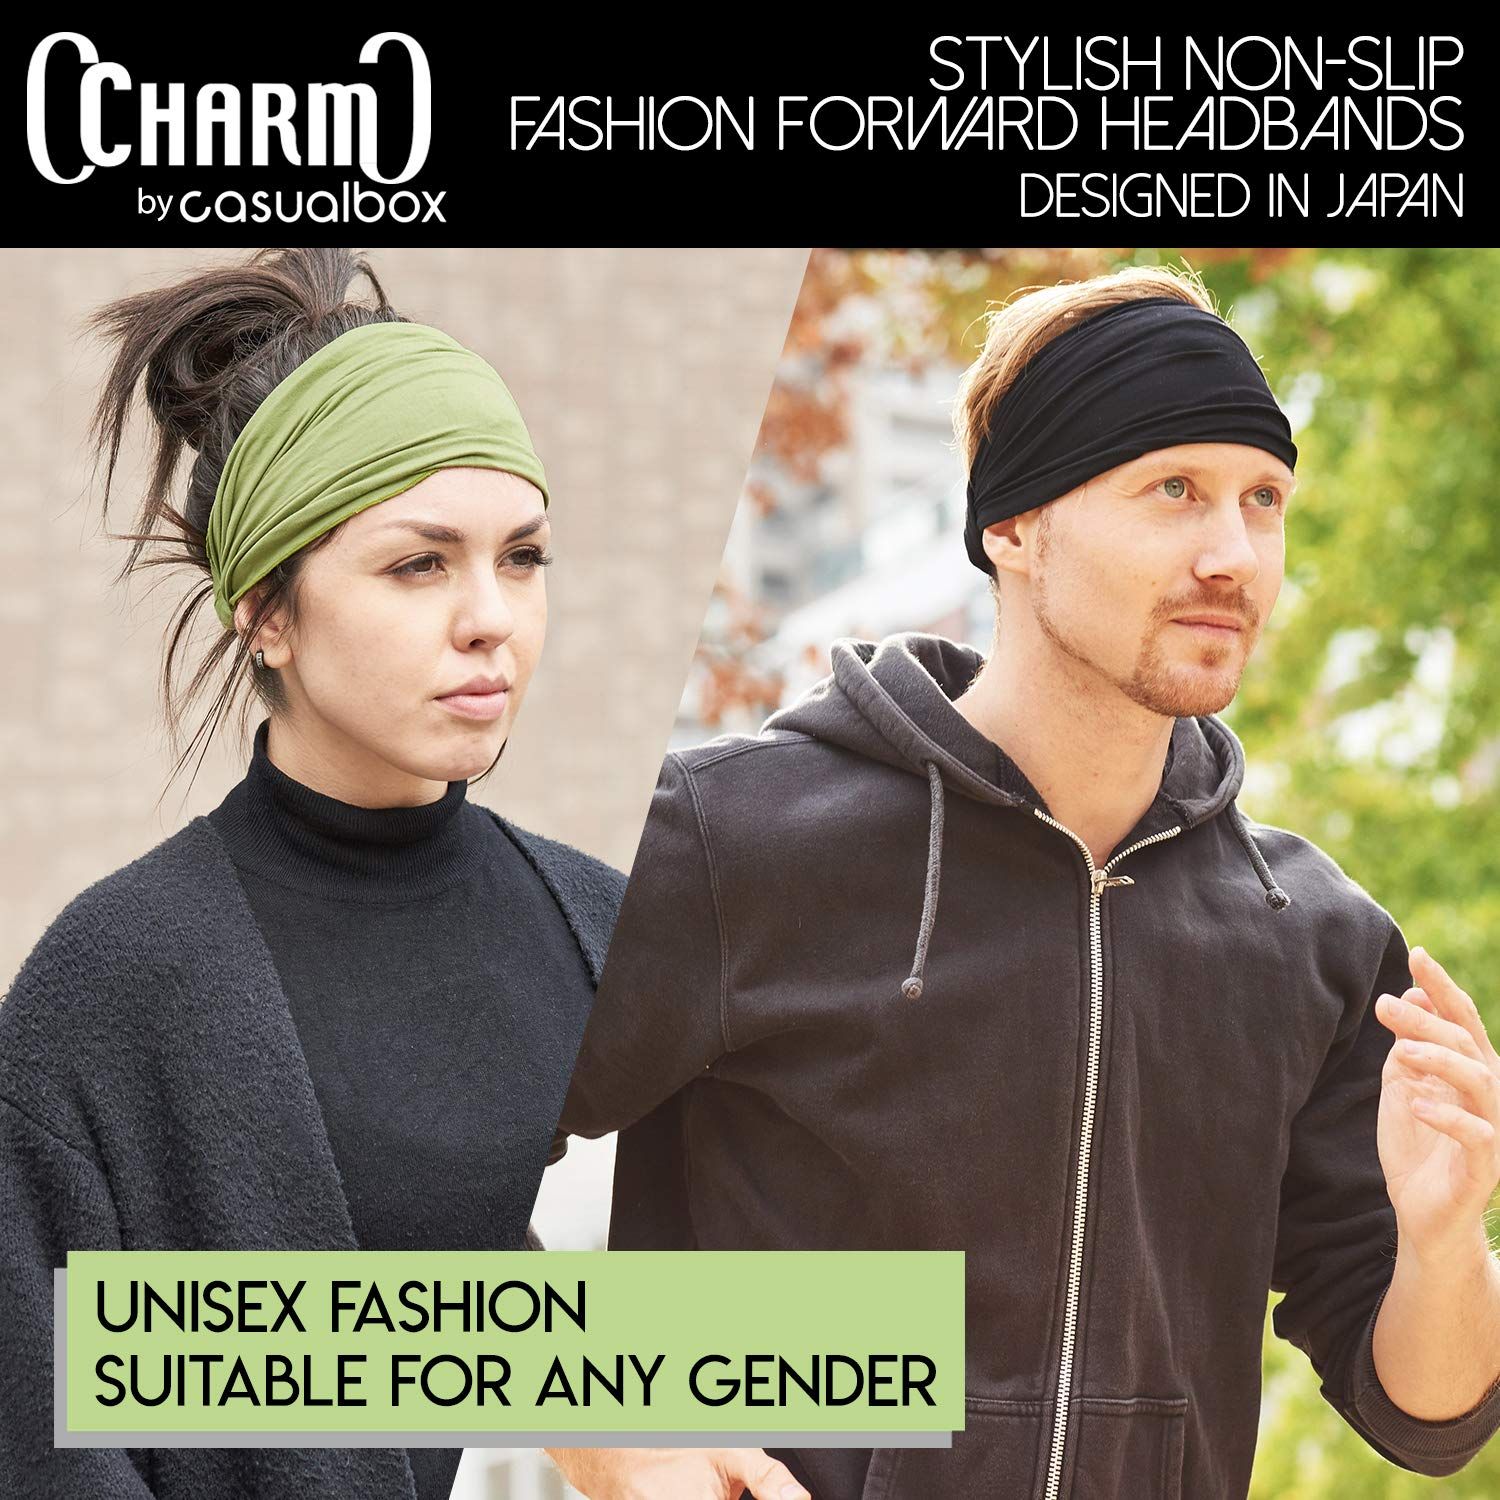 Black Japanese Bandana Headbands for Men and Women – Comfortable Head Bands with Elastic Secure Snug Fit Ideal Runners Fitness Sports Football Tennis Stylish Lightweight M by CCHARM (Image #5)